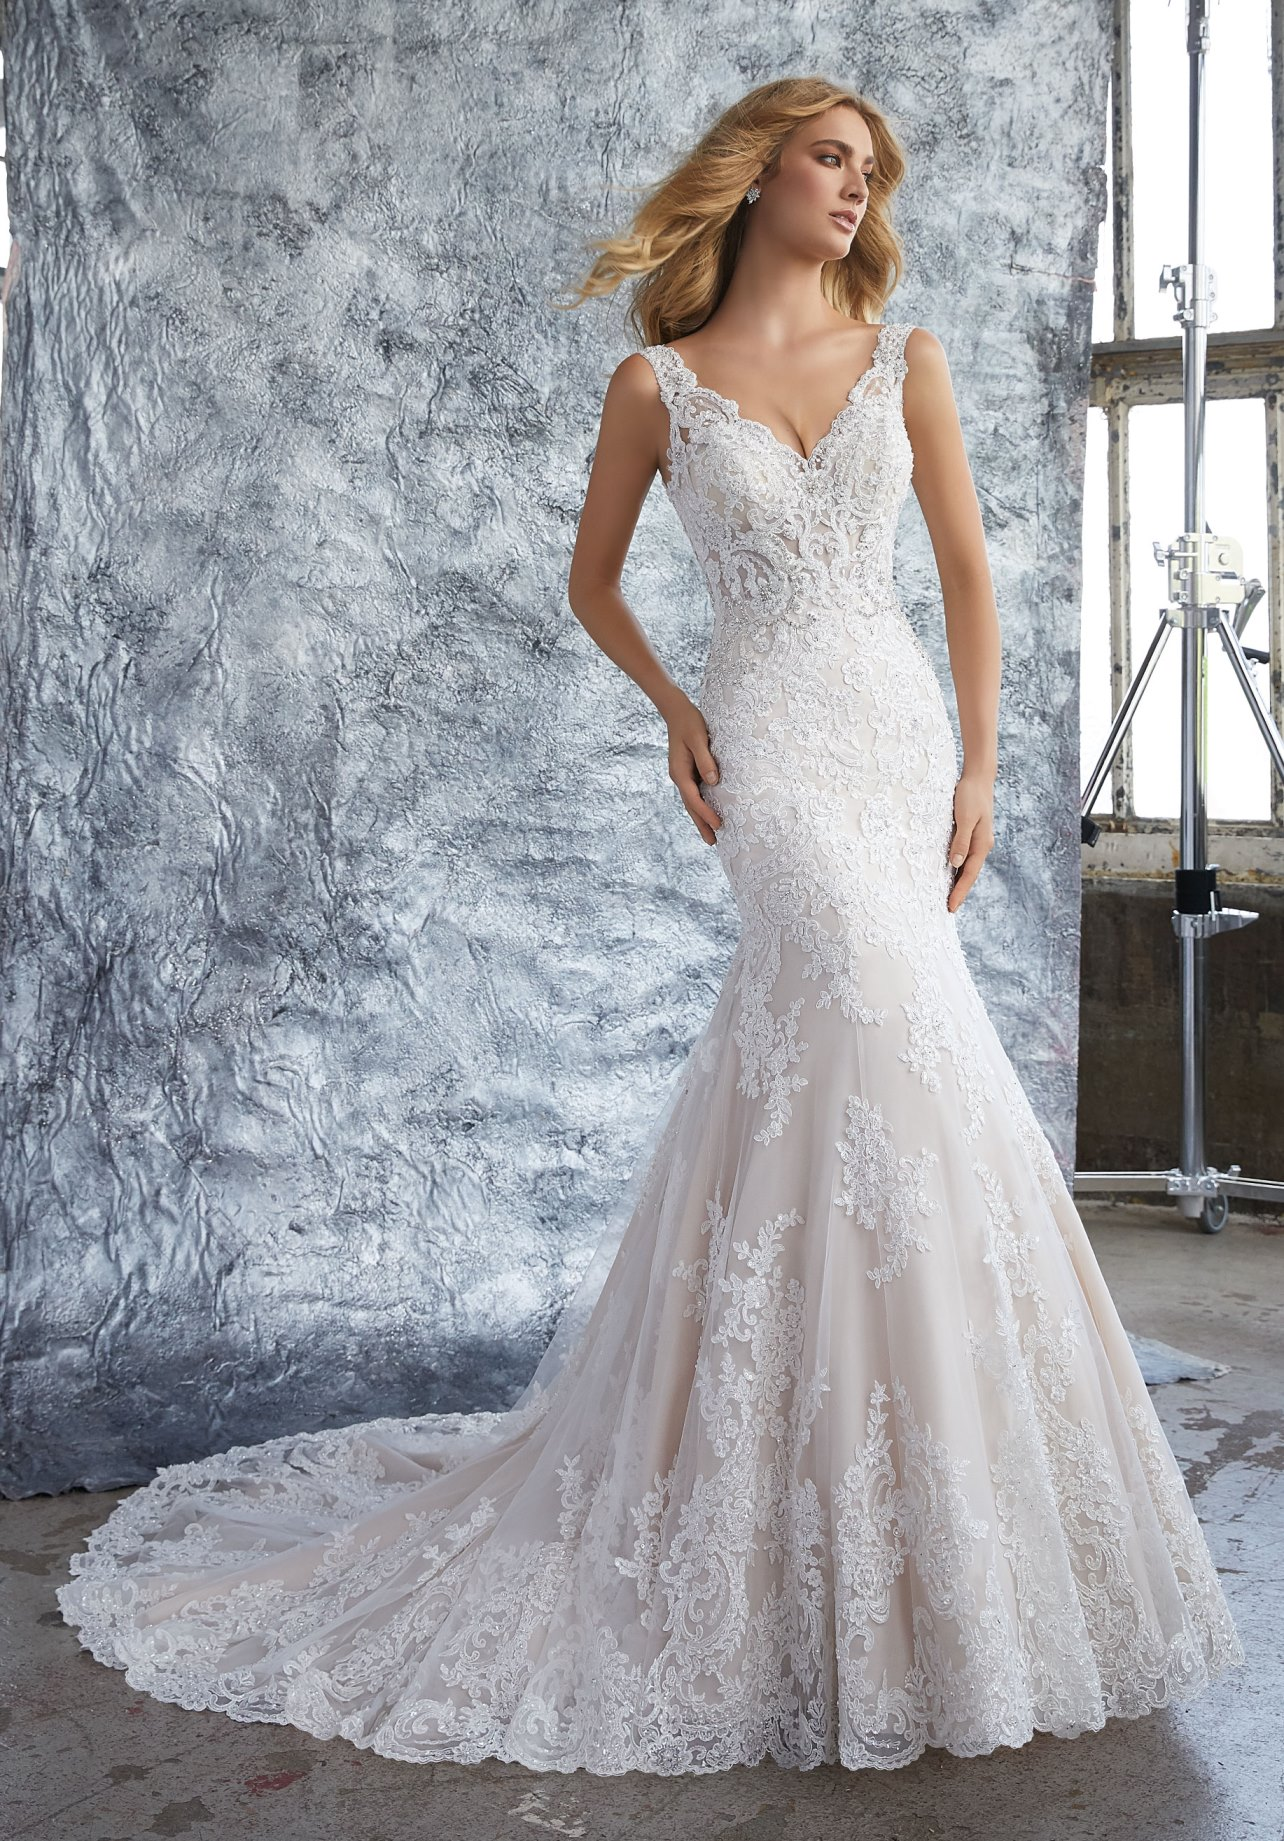 Guest Post: Wedding dress styles for every body type